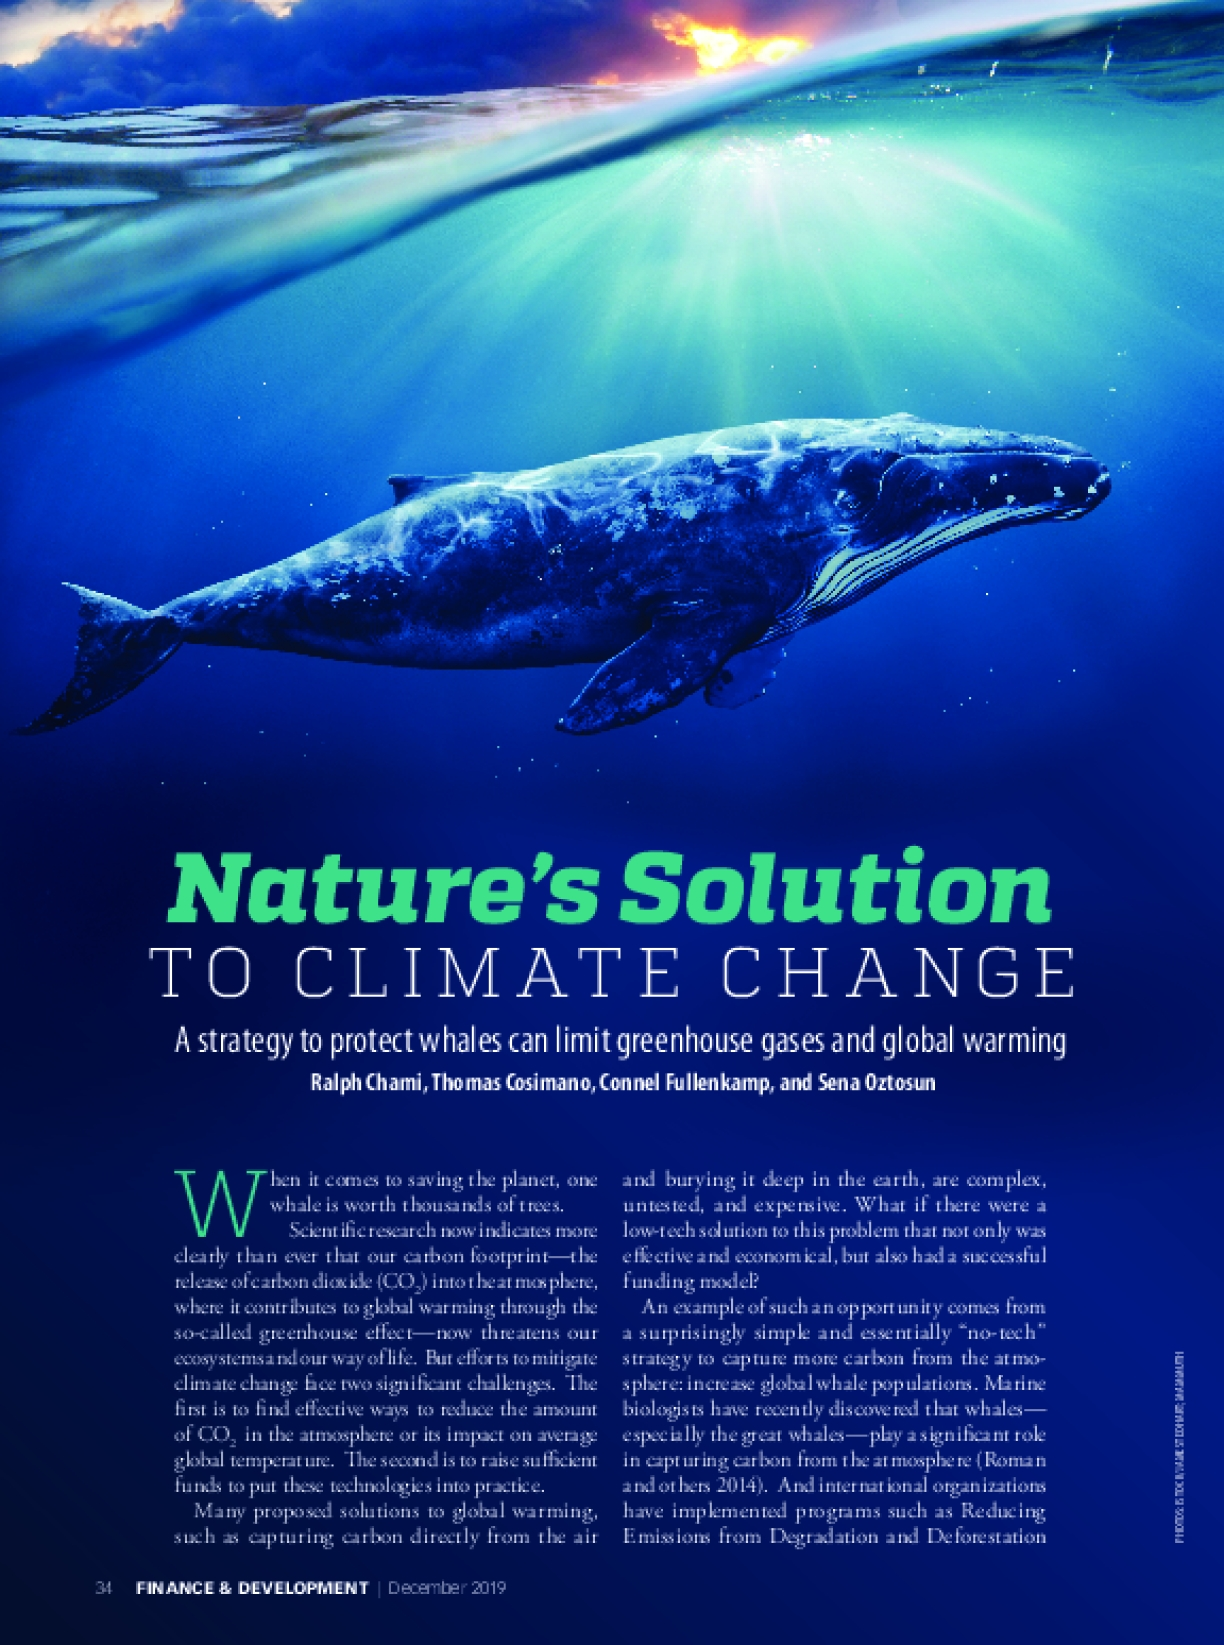 Nature's Solution to Climate Change